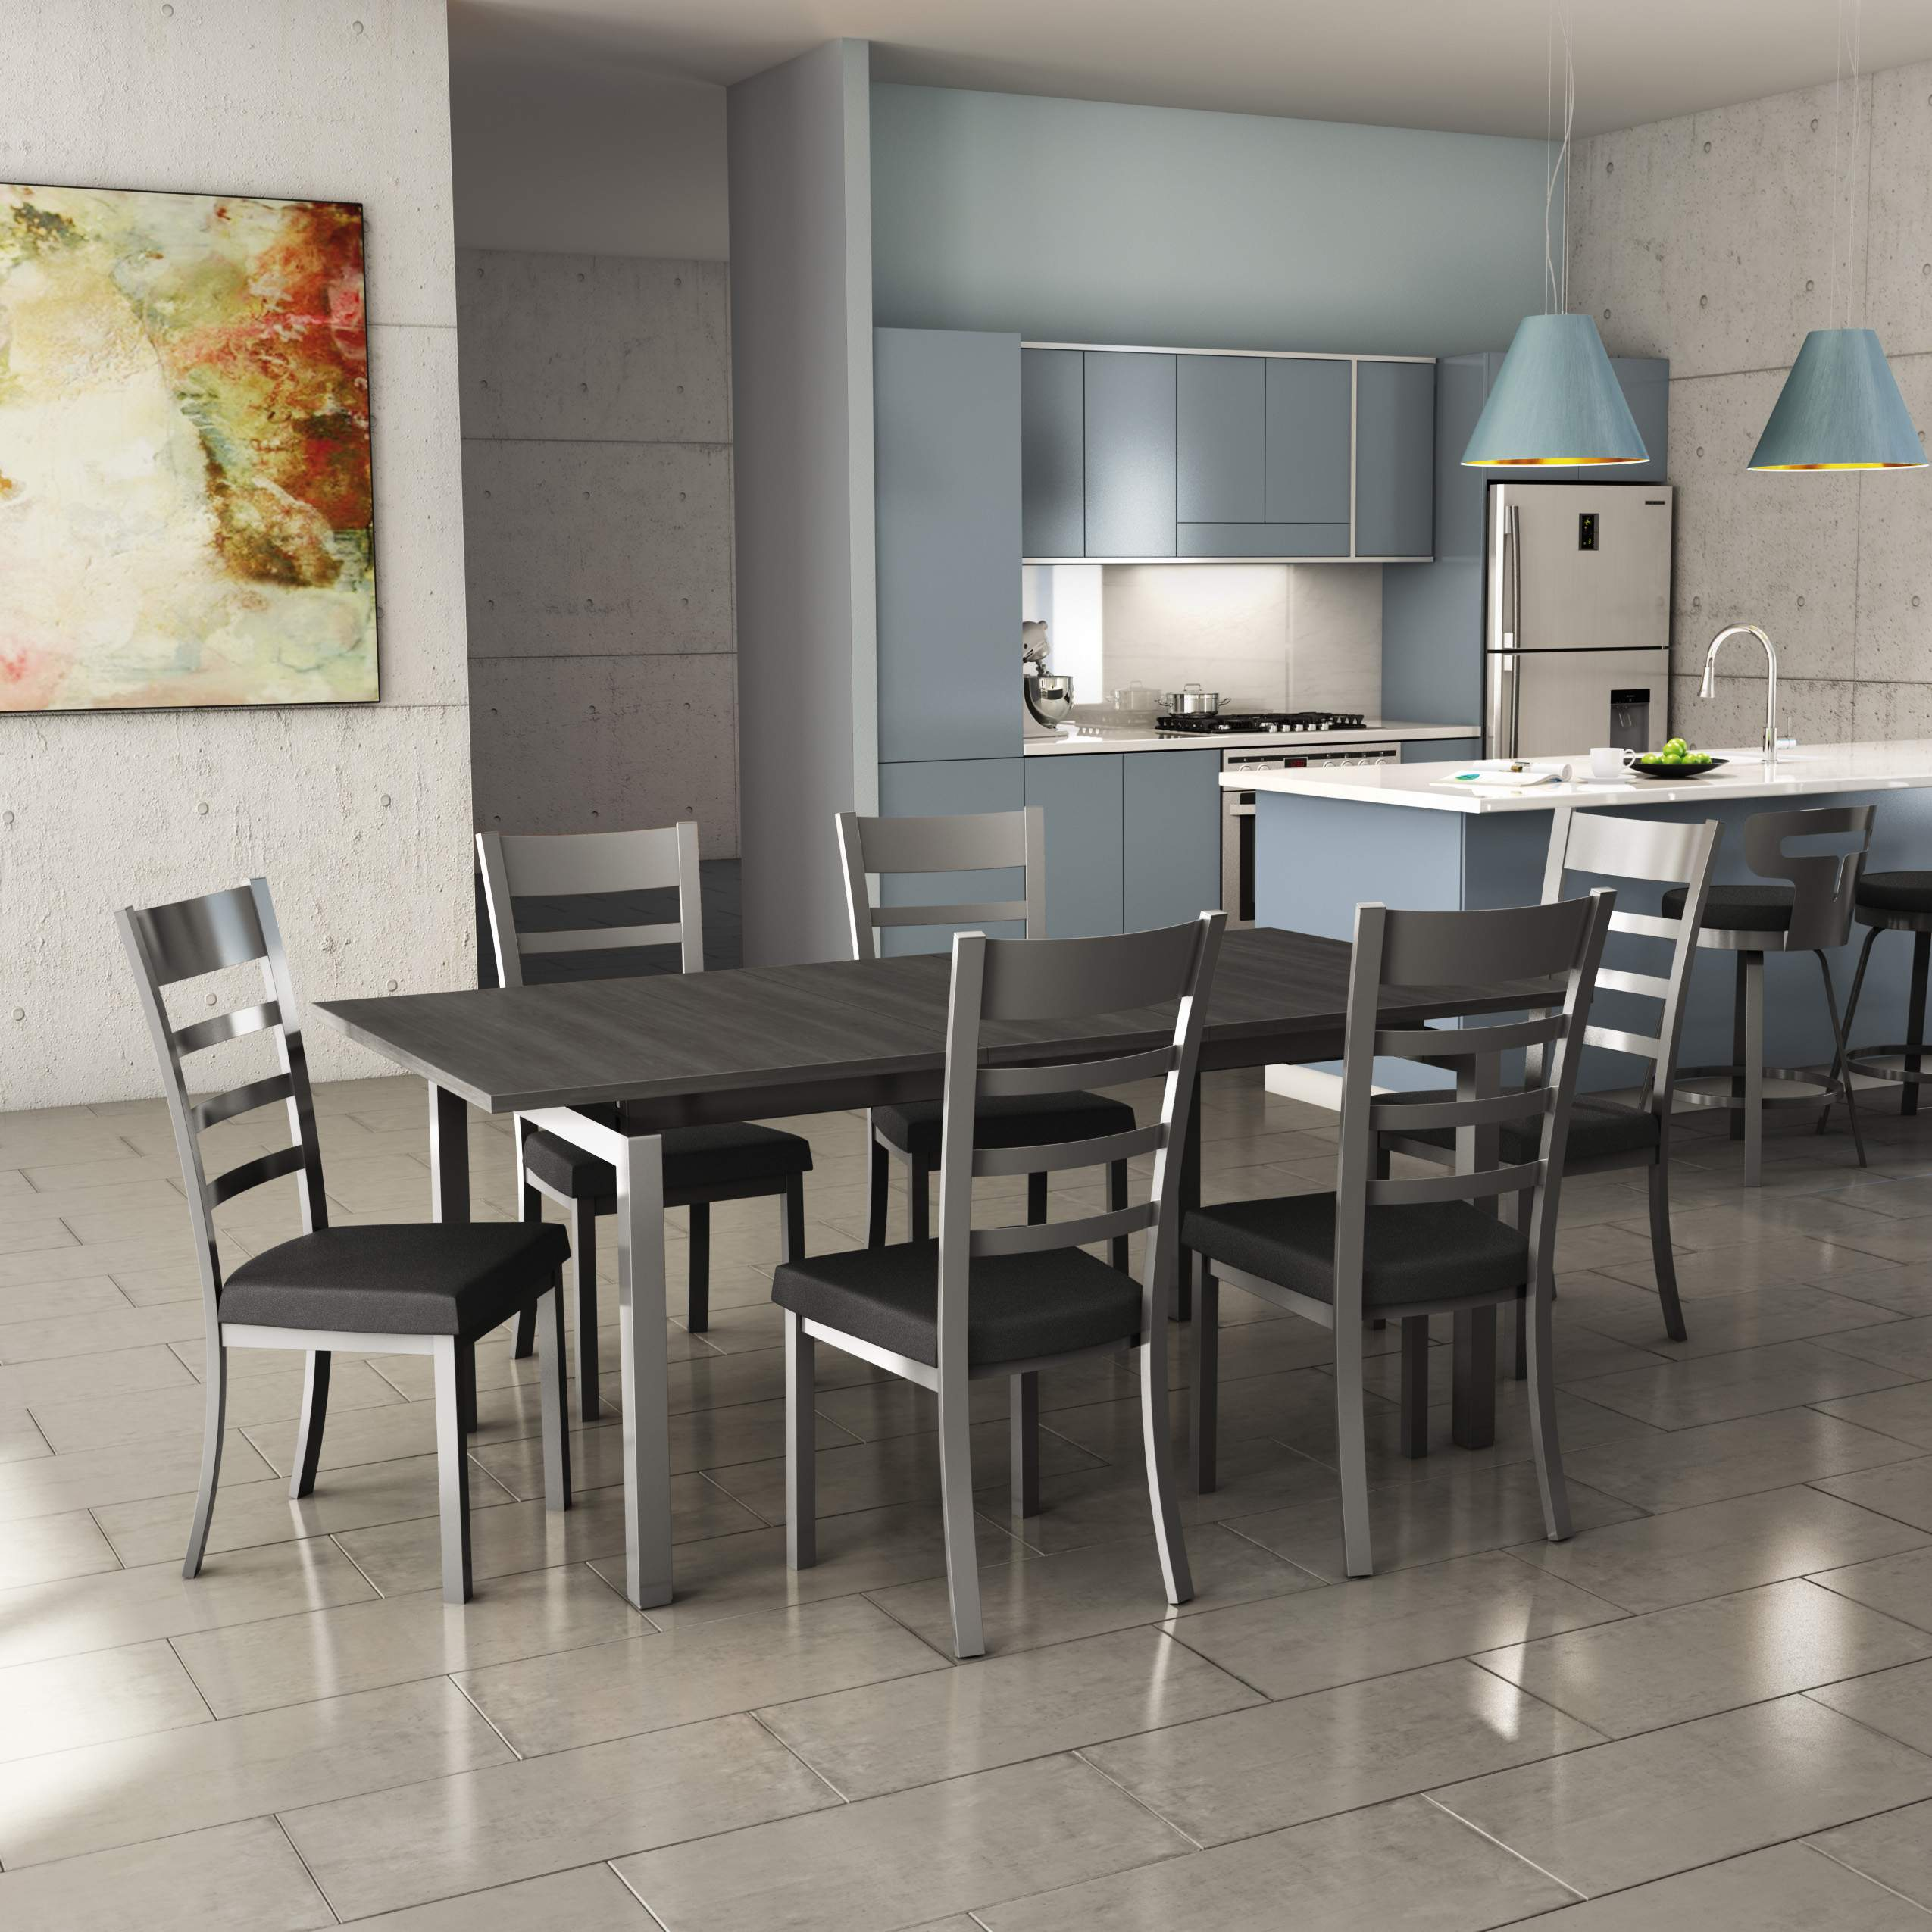 Owen Modern Dining Room Furniture Set in Long Island